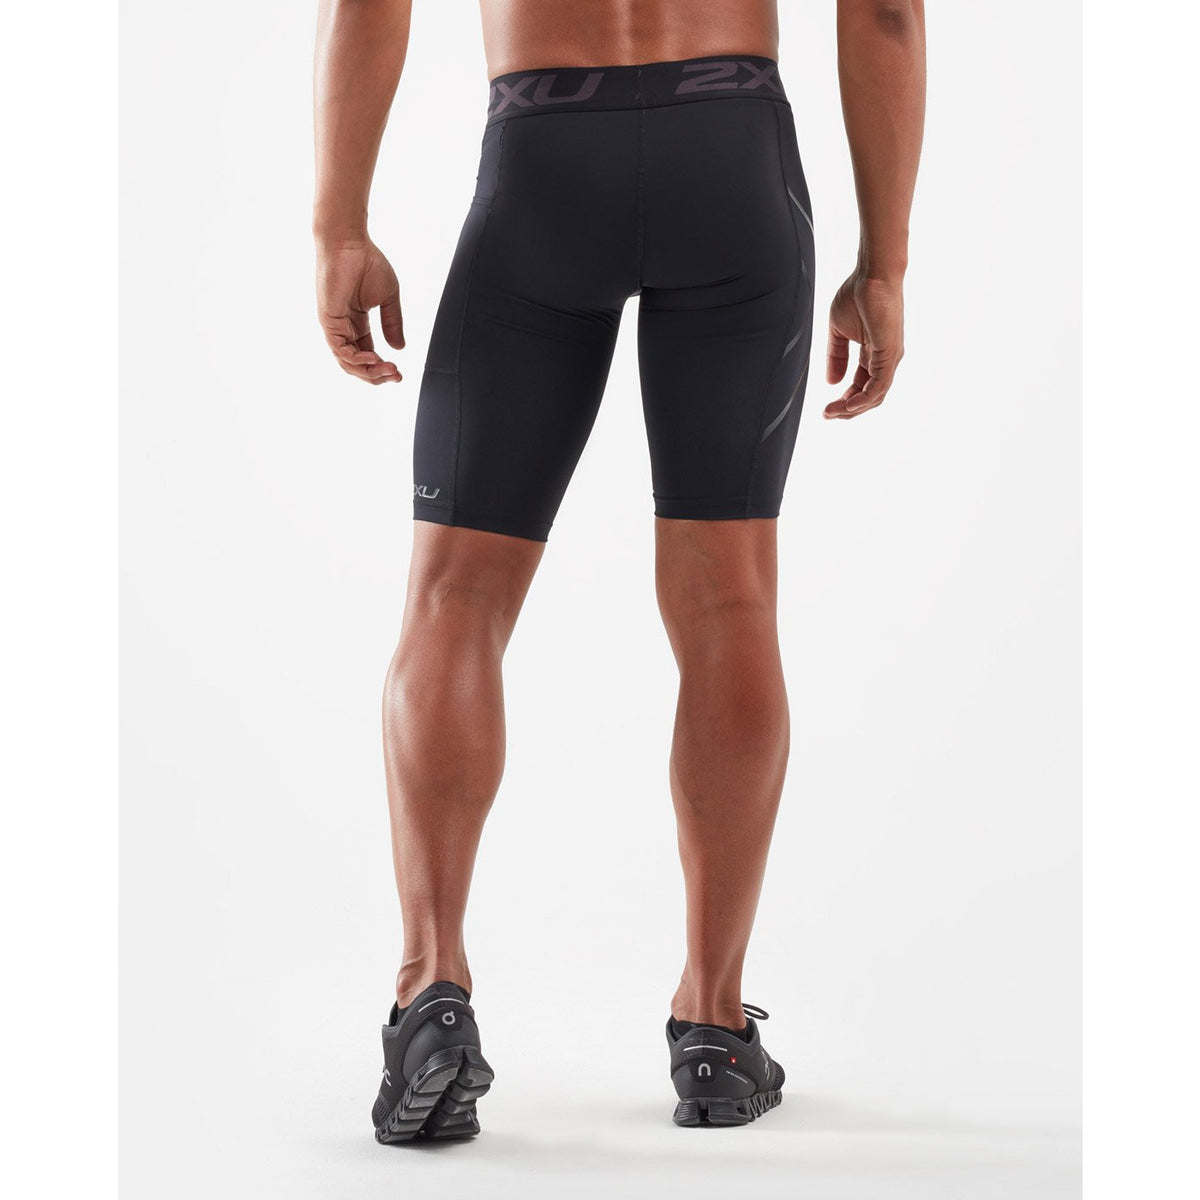 2XU Mens ACCELERATE Comp Shorts - Running shoes. Sole Motive , Melbourne, Australia.